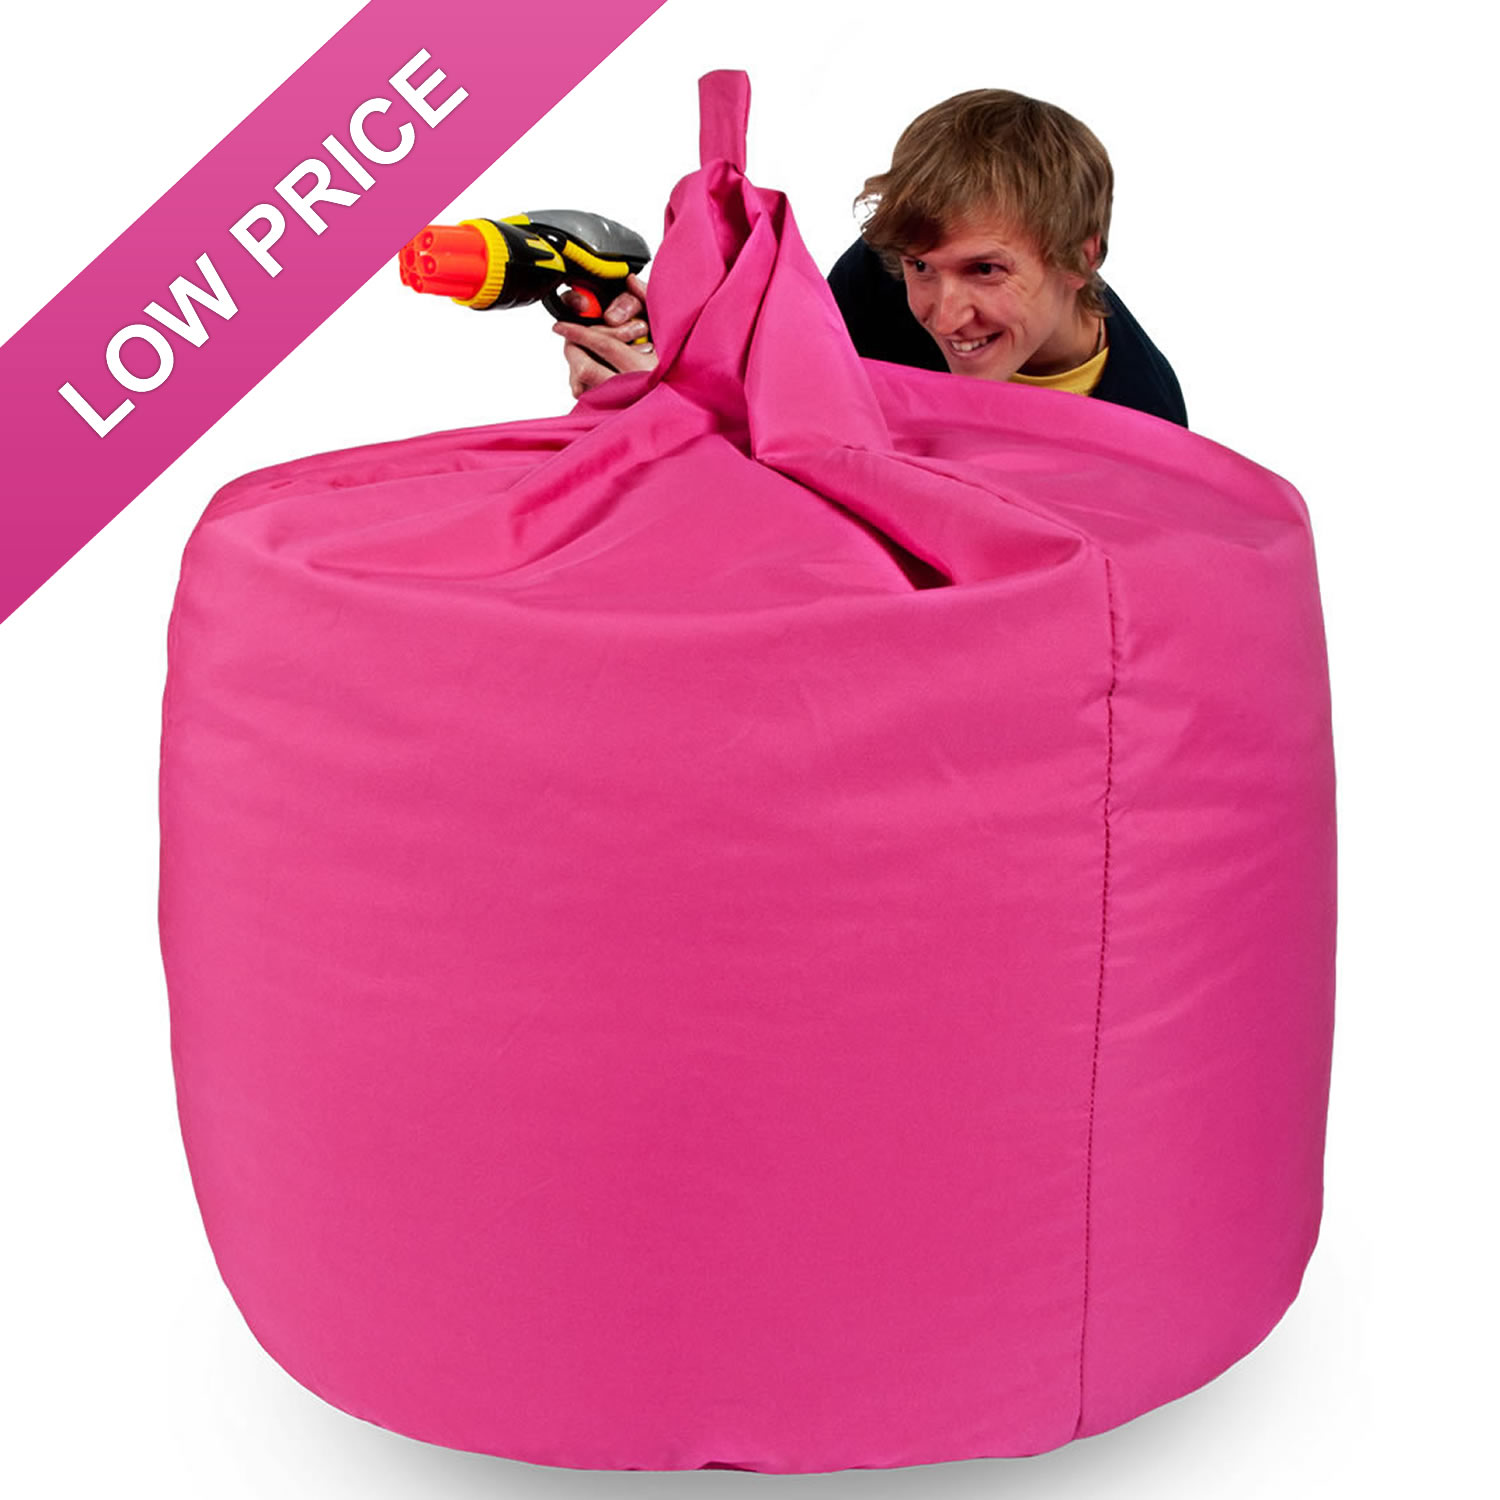 Adult Classic Beanbag For Indoors Or Outdoors